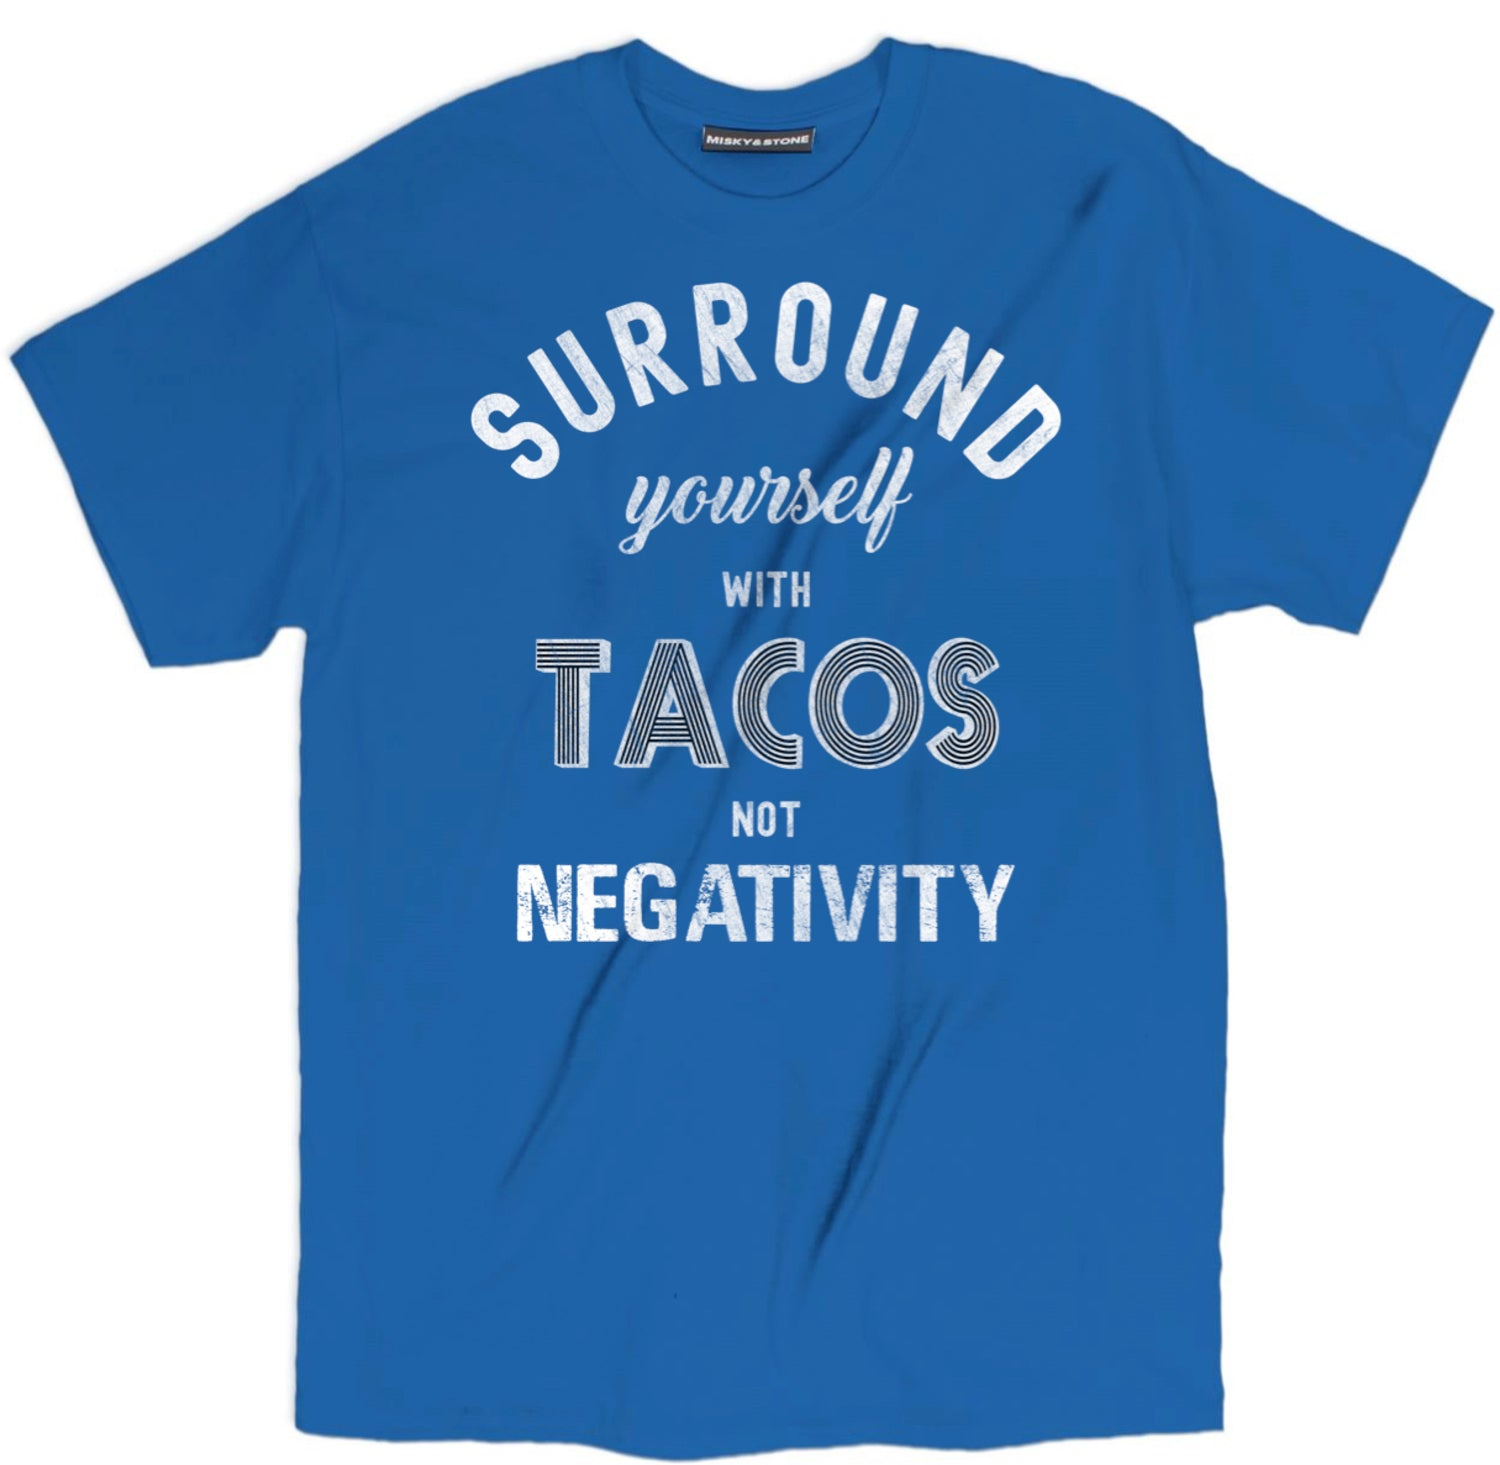 surround yourself with tacos not negativity t shirt, taco shirts, taco t shirt, funny taco shirts, cute taco shirts, taco tee shirts, taco tee, taco apparel,